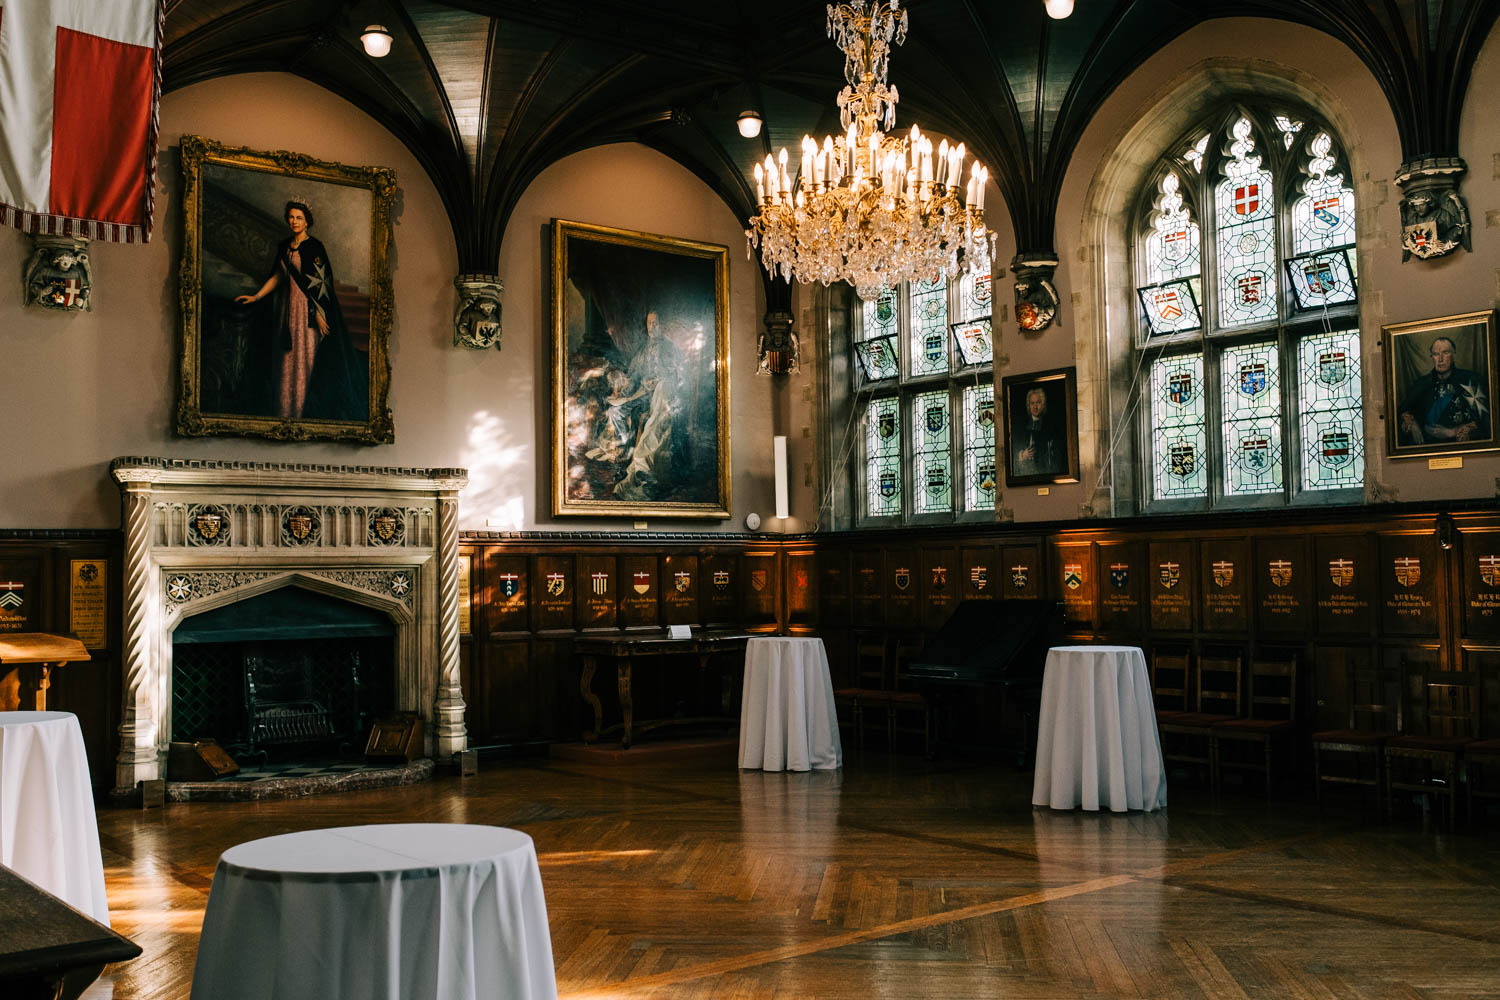 trinity_college_museum_of_the_order_of_st_john -3.jpg